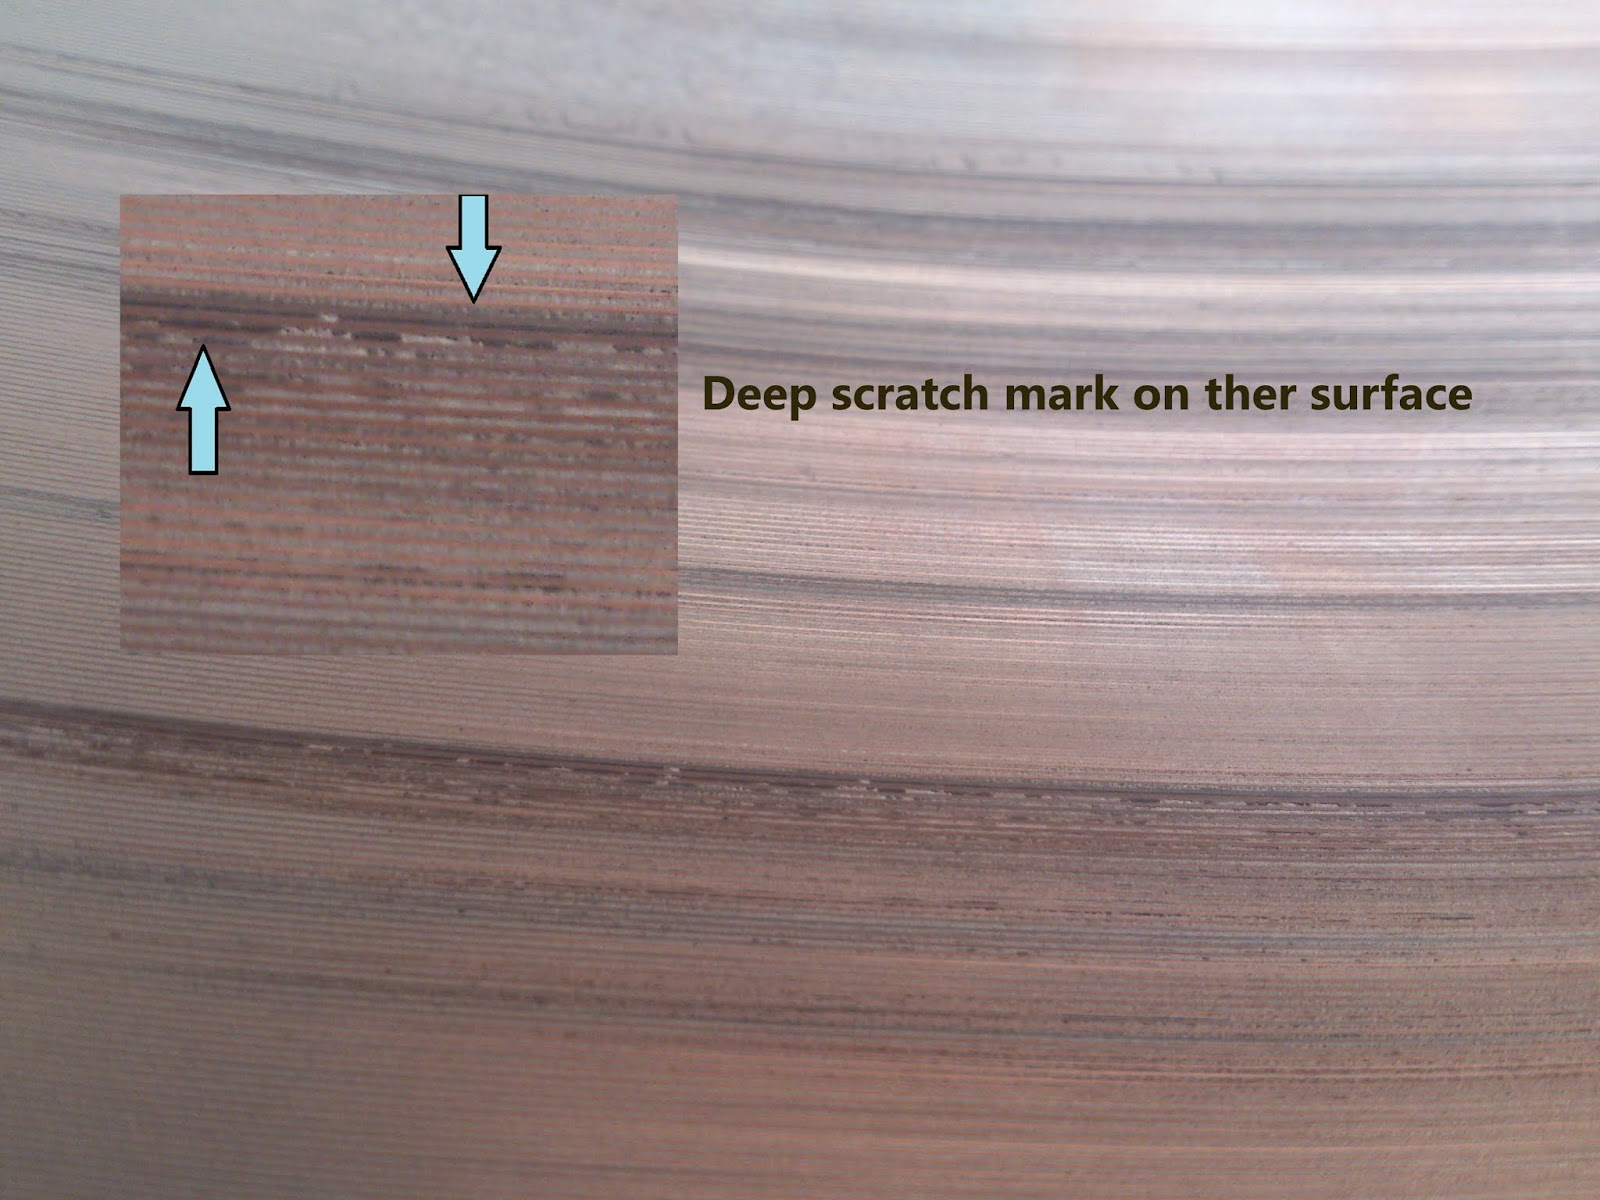 deep scratch mark on the connection rod bearing surface